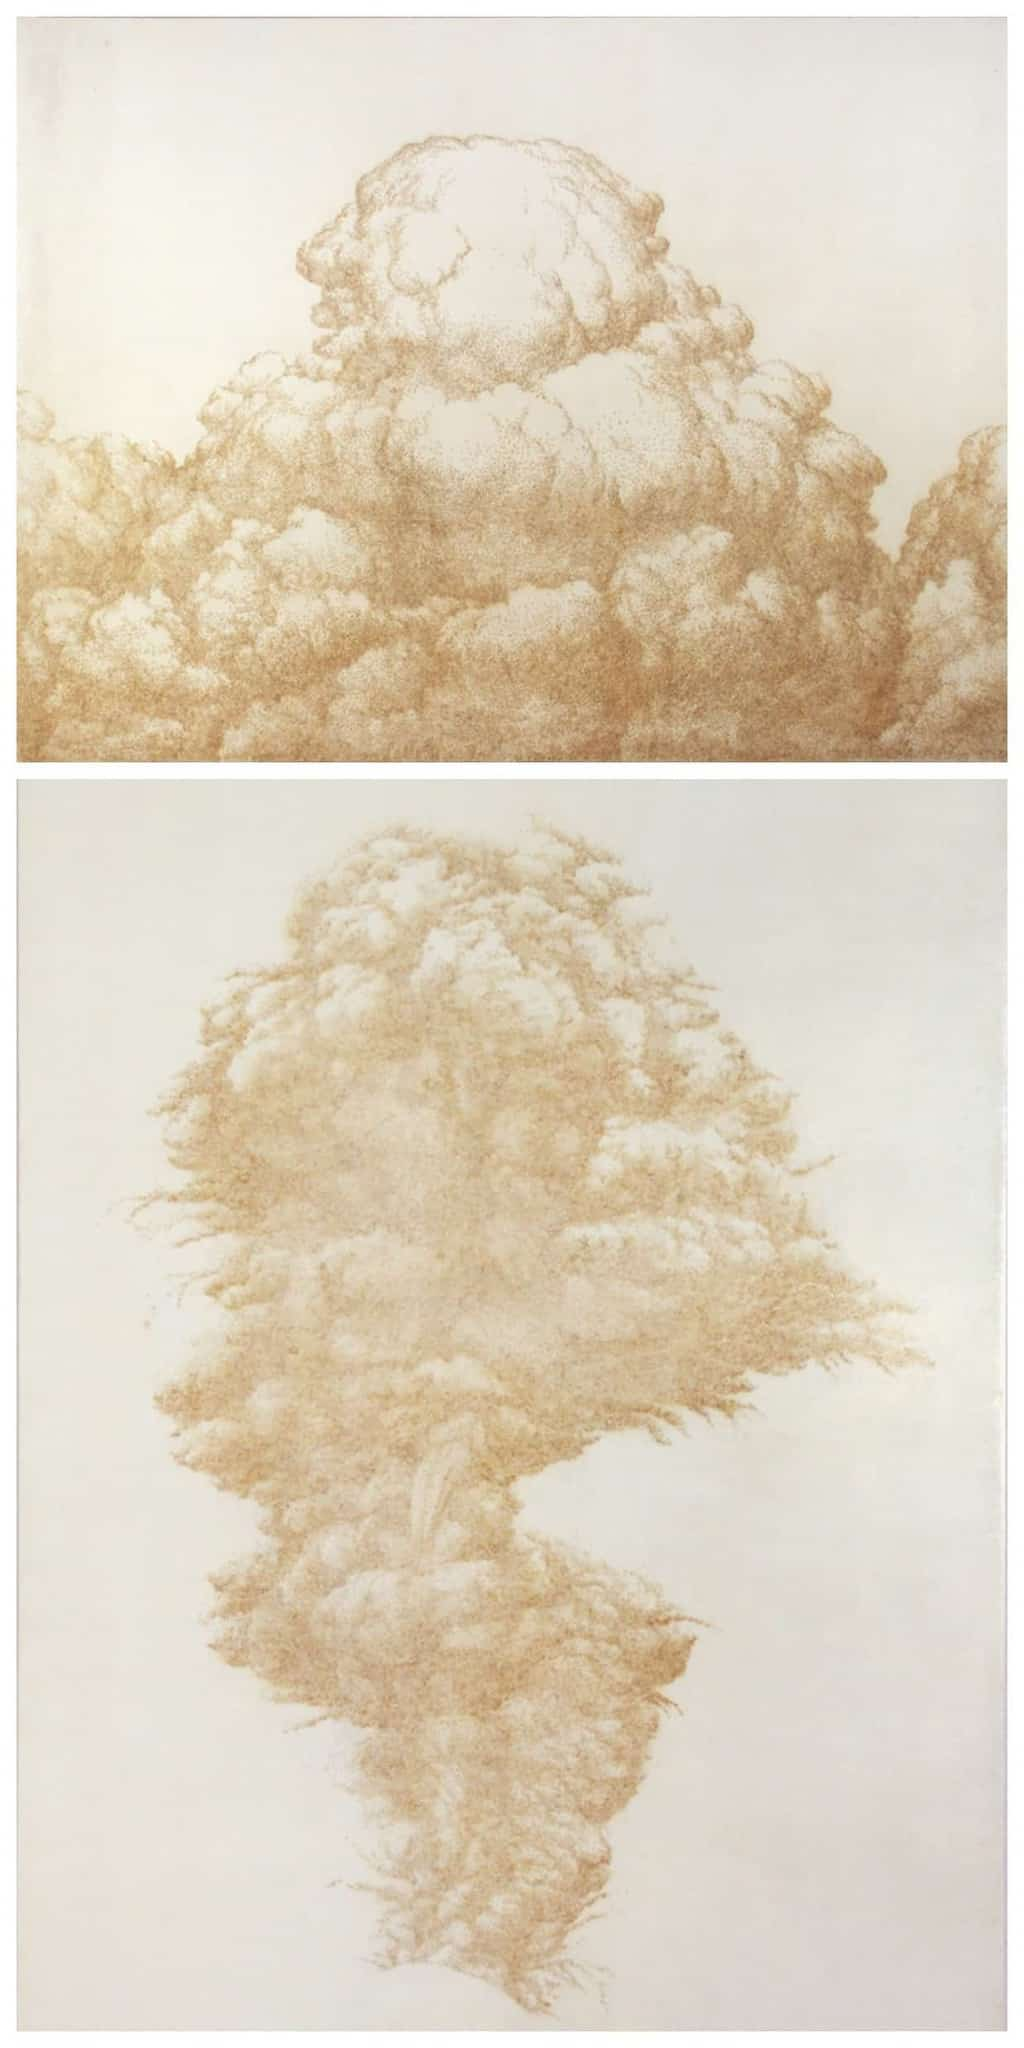 Art by jihyun park - reverse pointillism by burning holes into paper